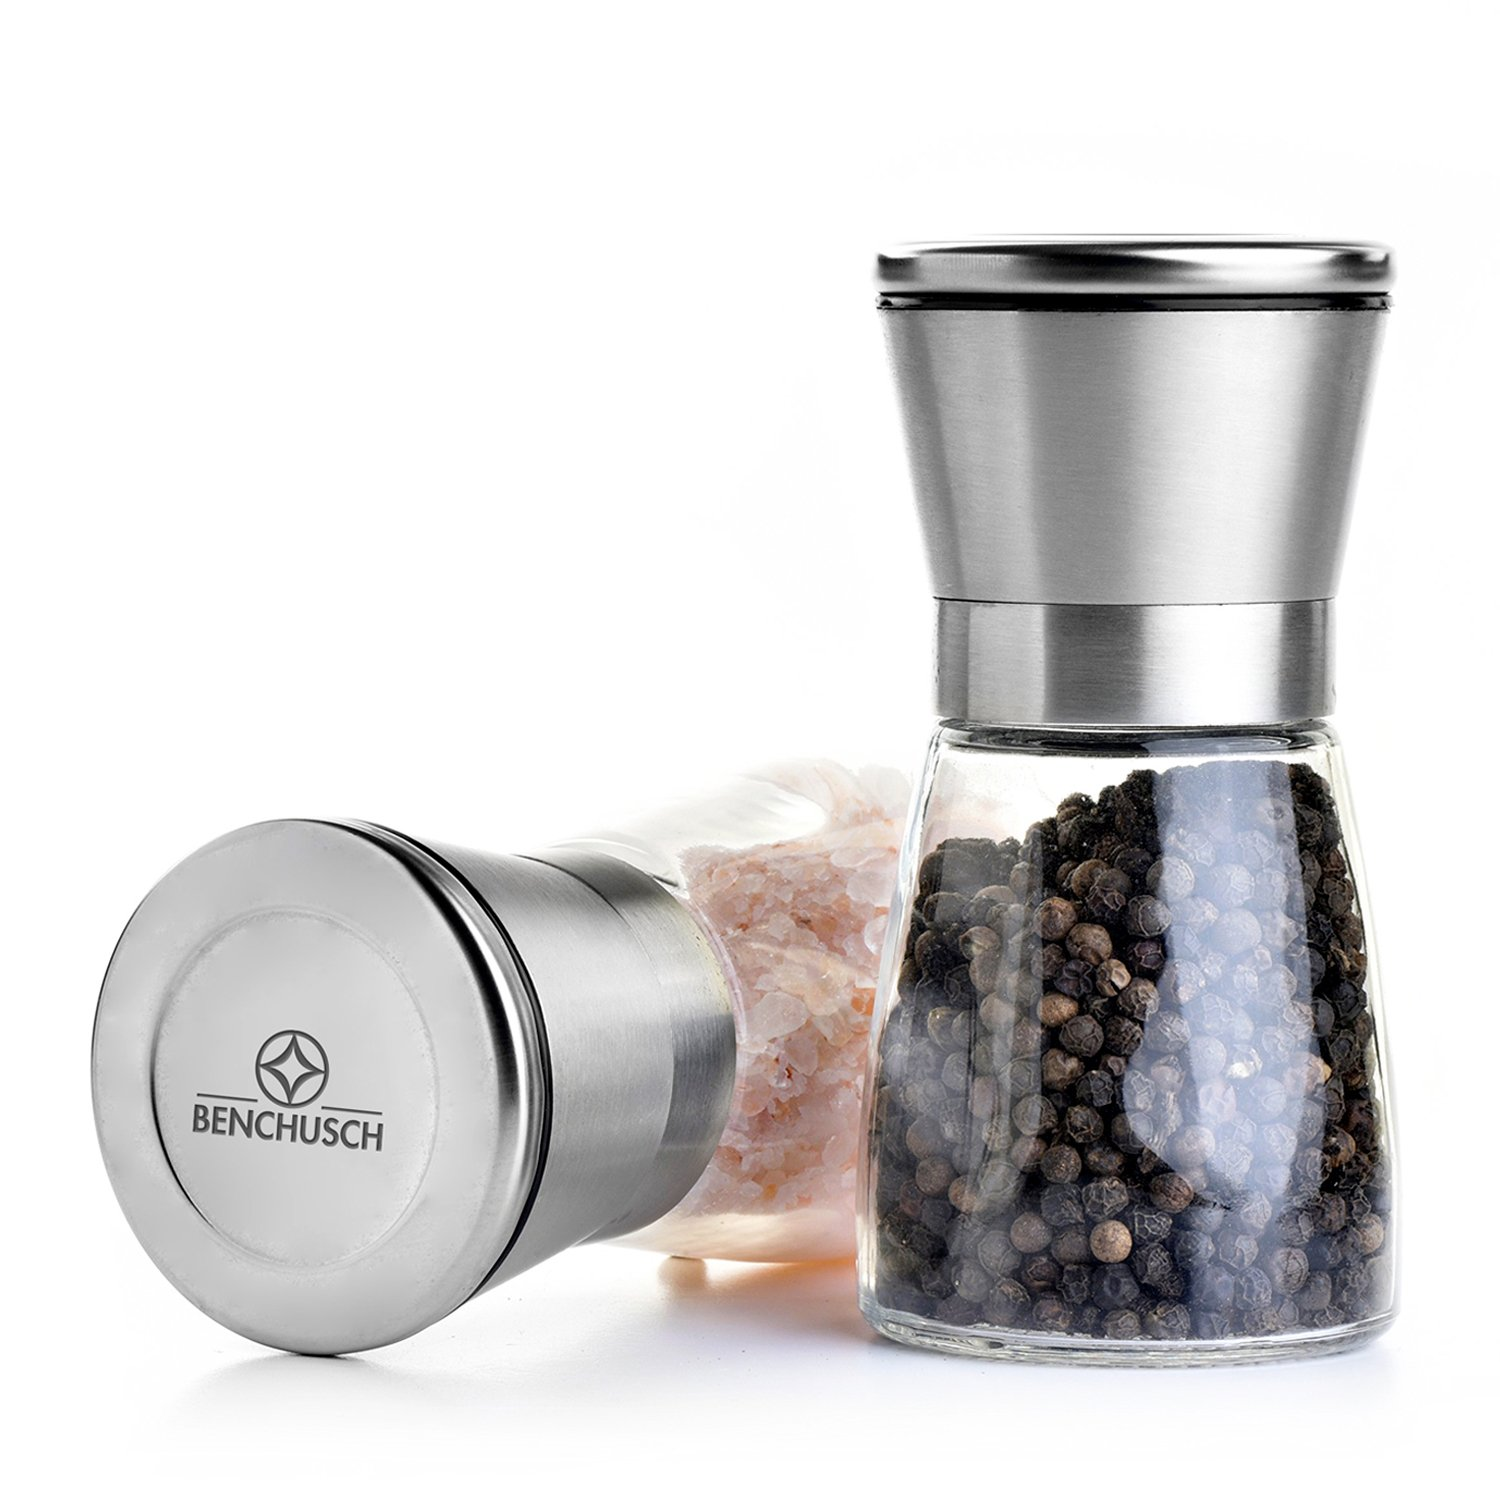 Benchusch Salt & Pepper Mills Set - keep the freshness of your favorite spices, perfect design for your kitchen - make your time in the kitchen easier and more comfortable